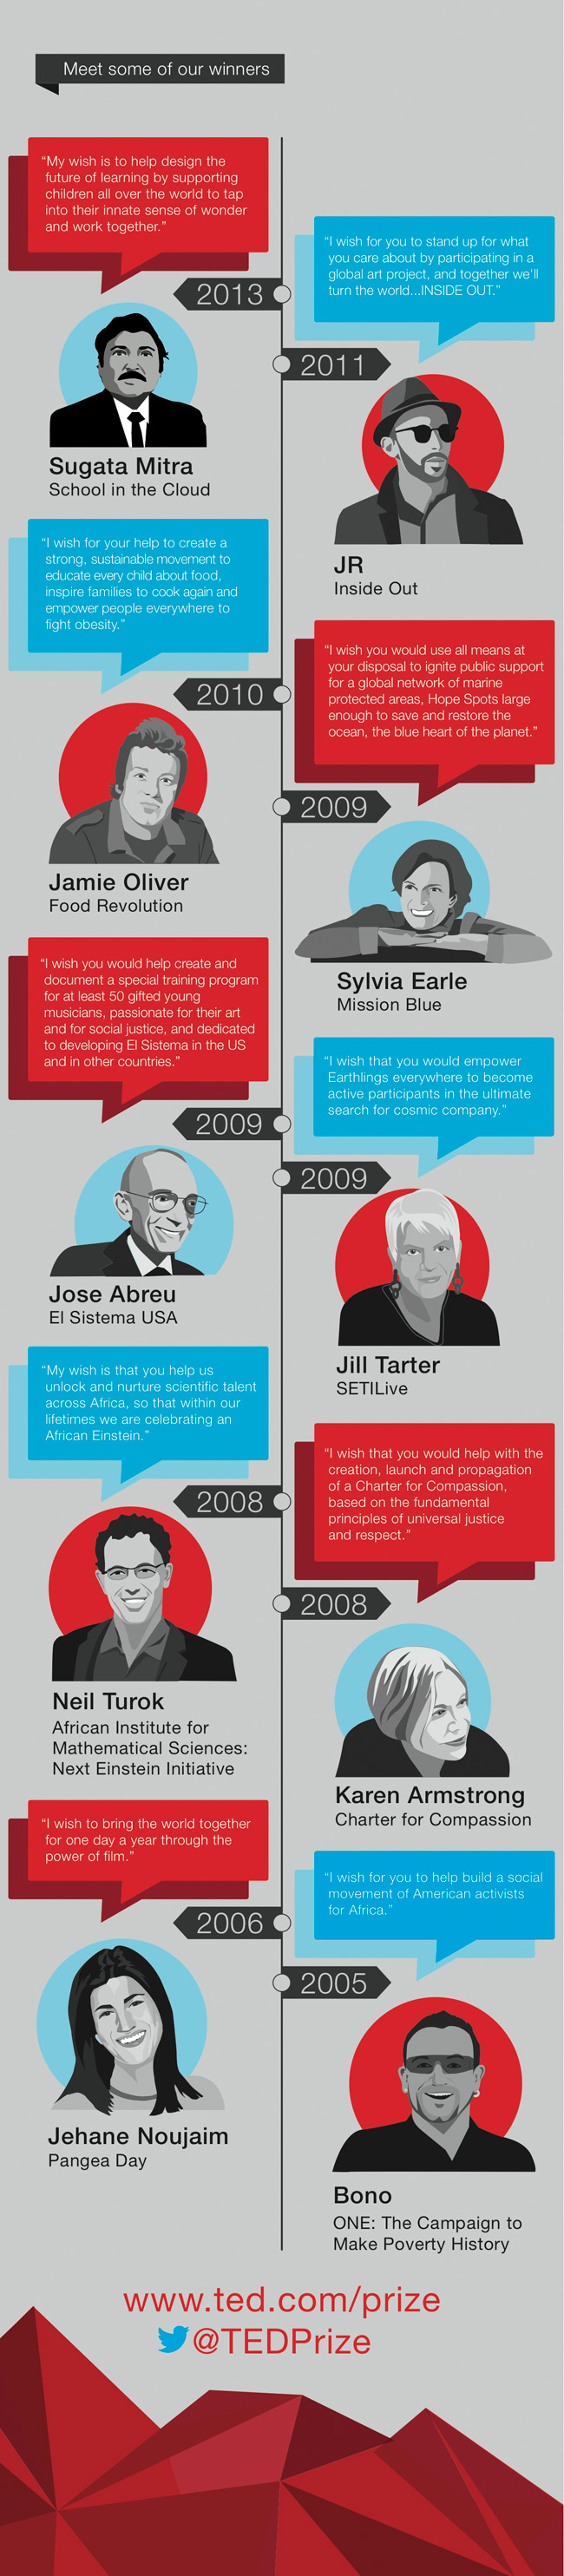 TED Prize winners from 2005 to 2013